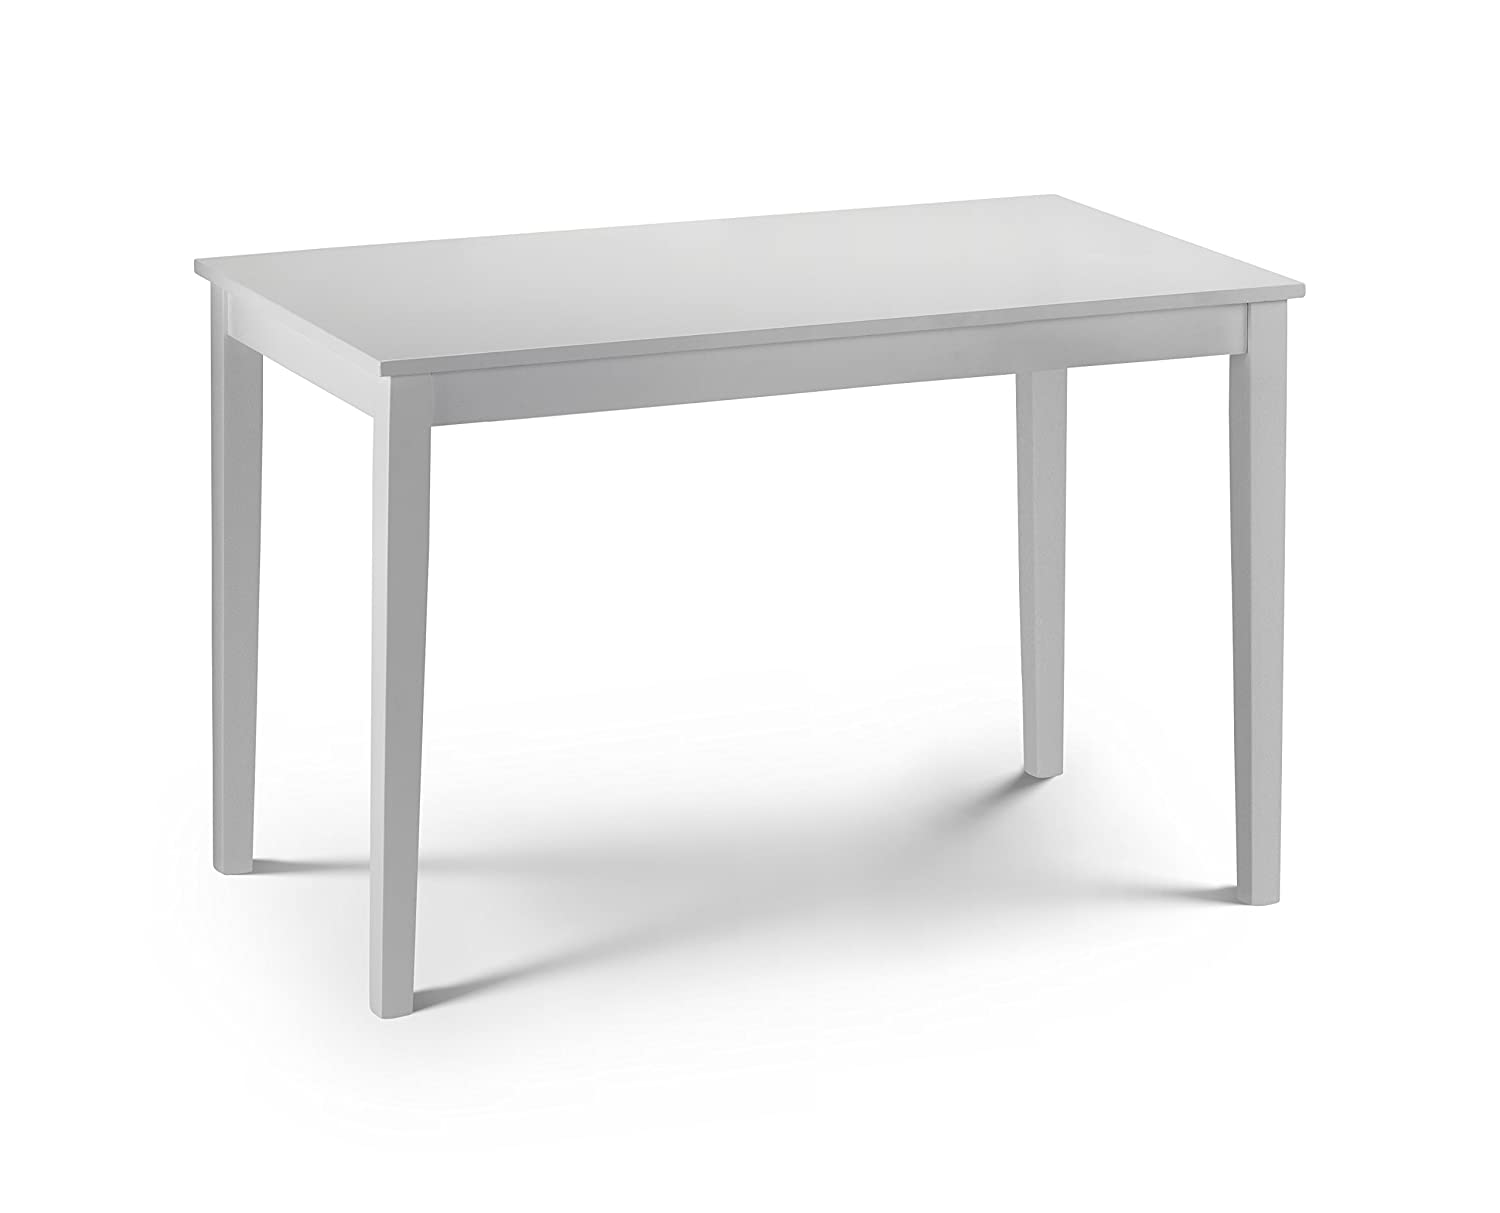 White Table Uk Part - 28: Julian Bowen Taku Dining Table - White Lacquer: Amazon.co.uk: Kitchen U0026 Home